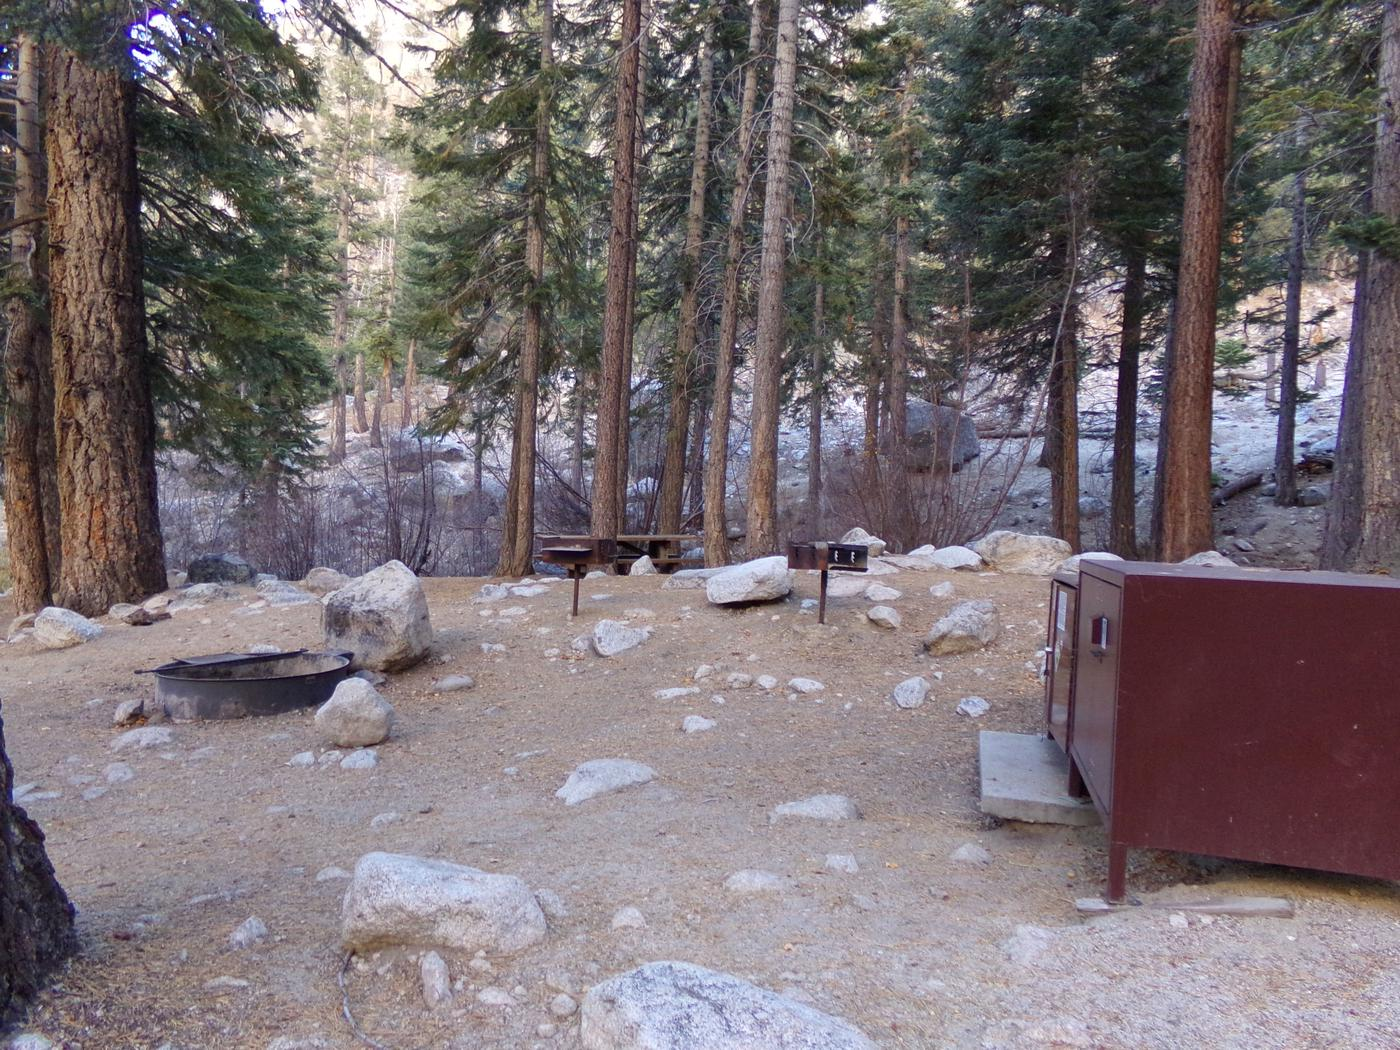 Mt. Whitney Portal Campground Group Site #02 featuring mountain top setting with multiple fire pits and camping space.